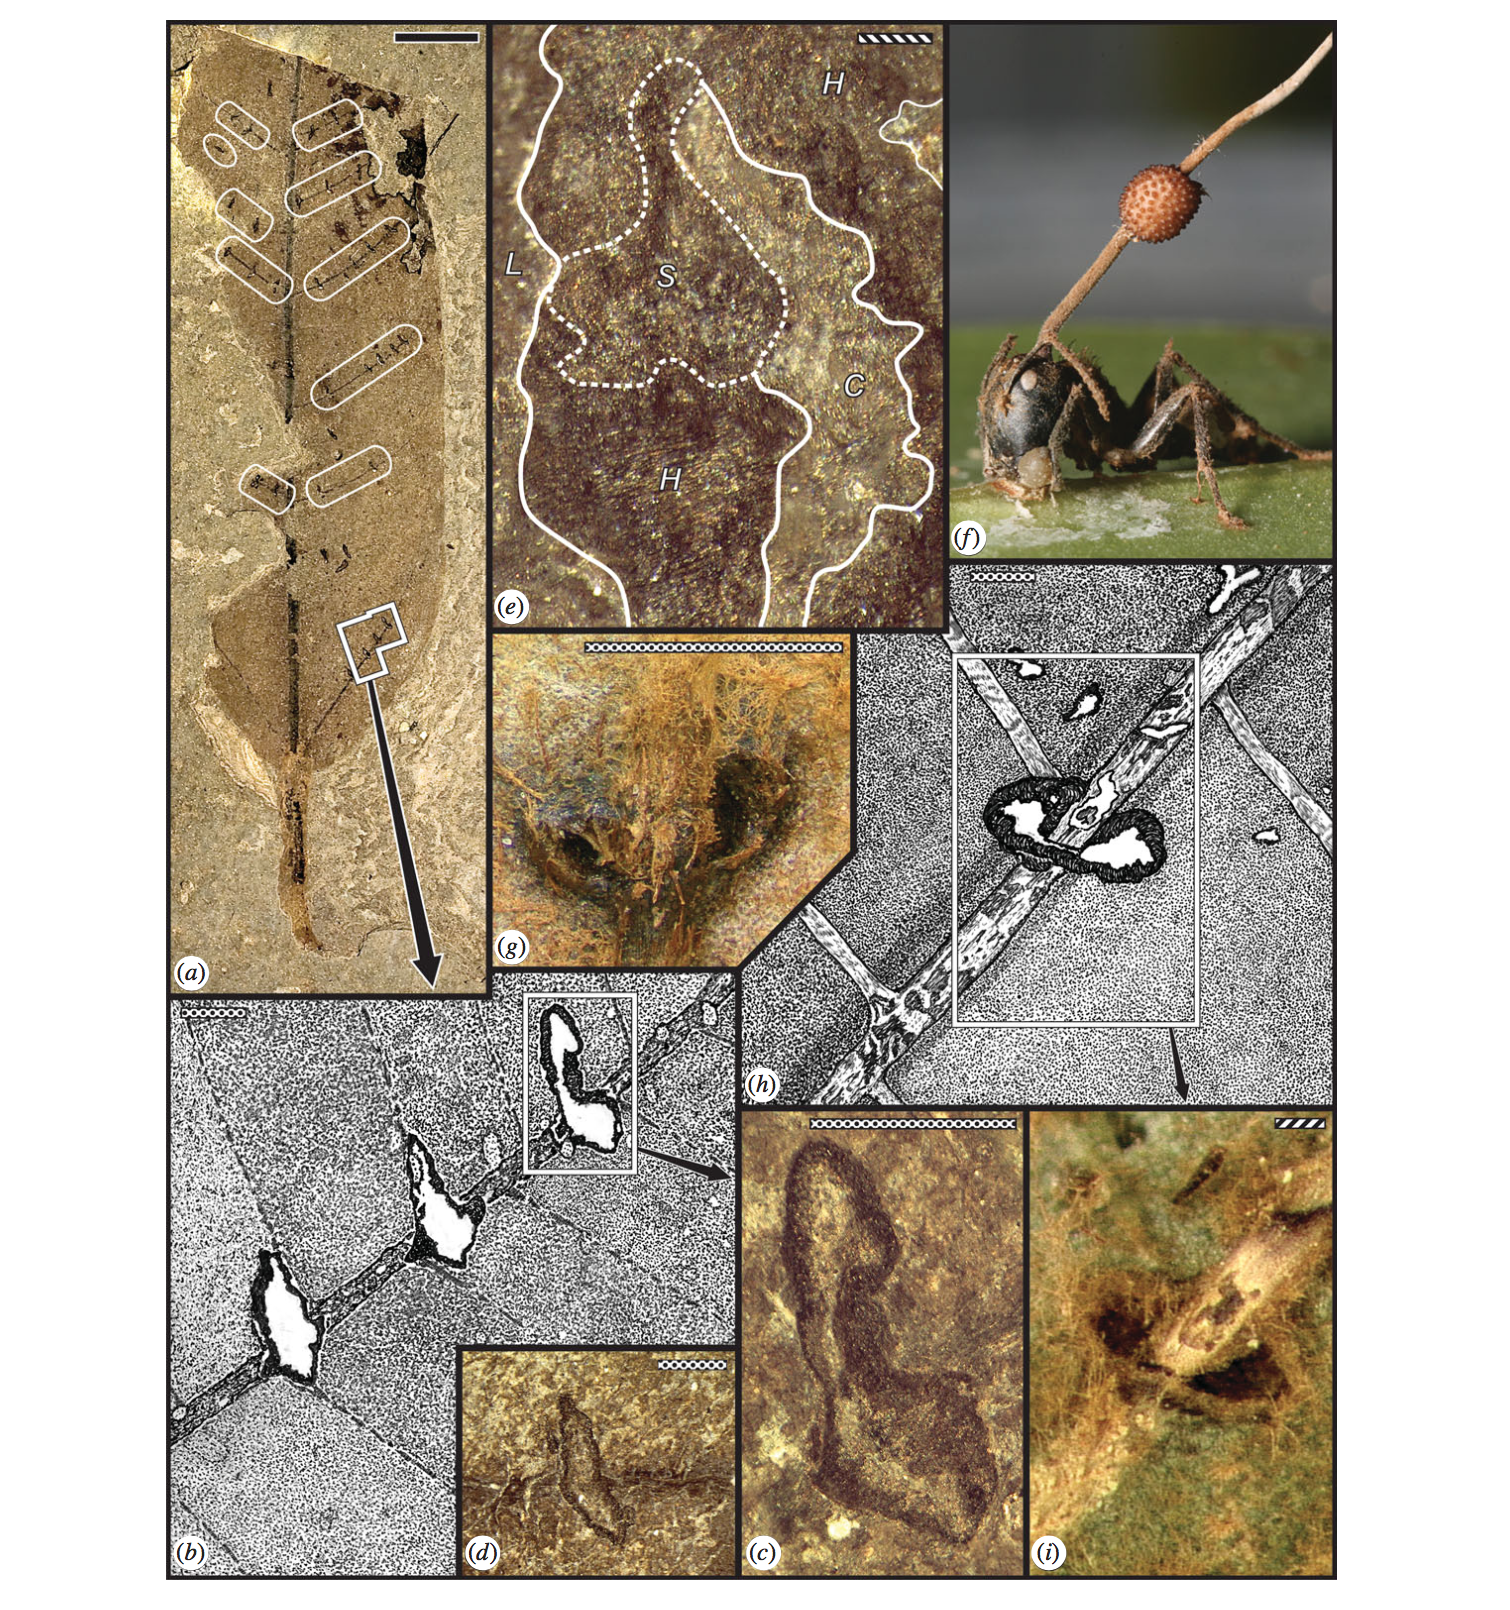 Fossils showing 'zombie ant' death grip. Top right shows  Ophiocordyceps unilateralis  fruiting through the head of the tropical carpenter ant  C. leonardi.  From Hughes et al. 2011.